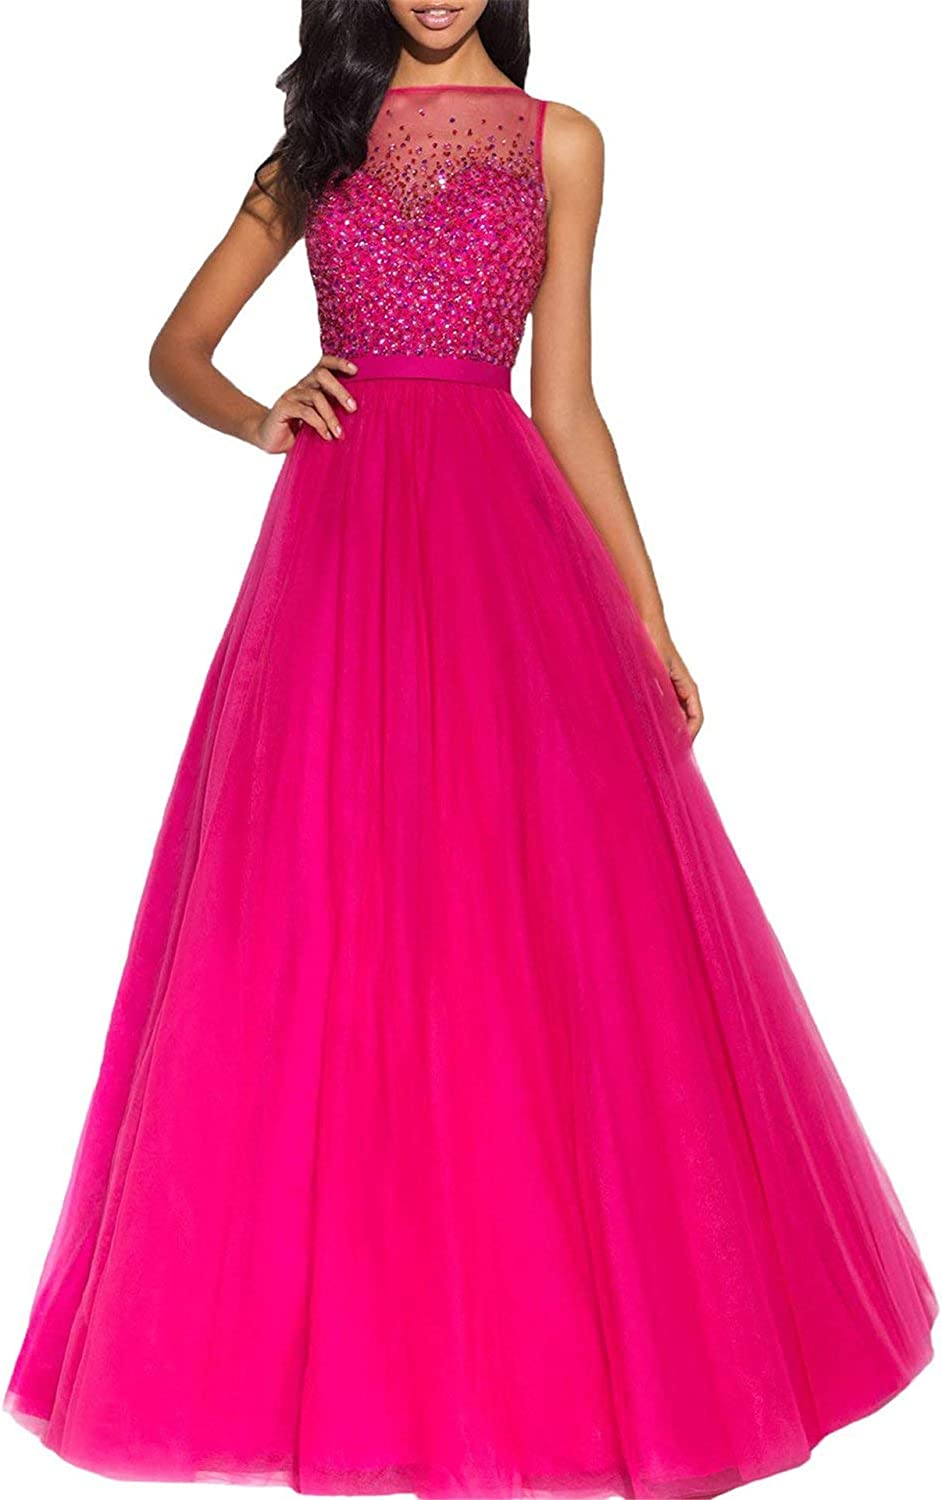 Gorgeous Sheer Neck Shinny Beaded Prom Dress Tulle Long Formal Gown